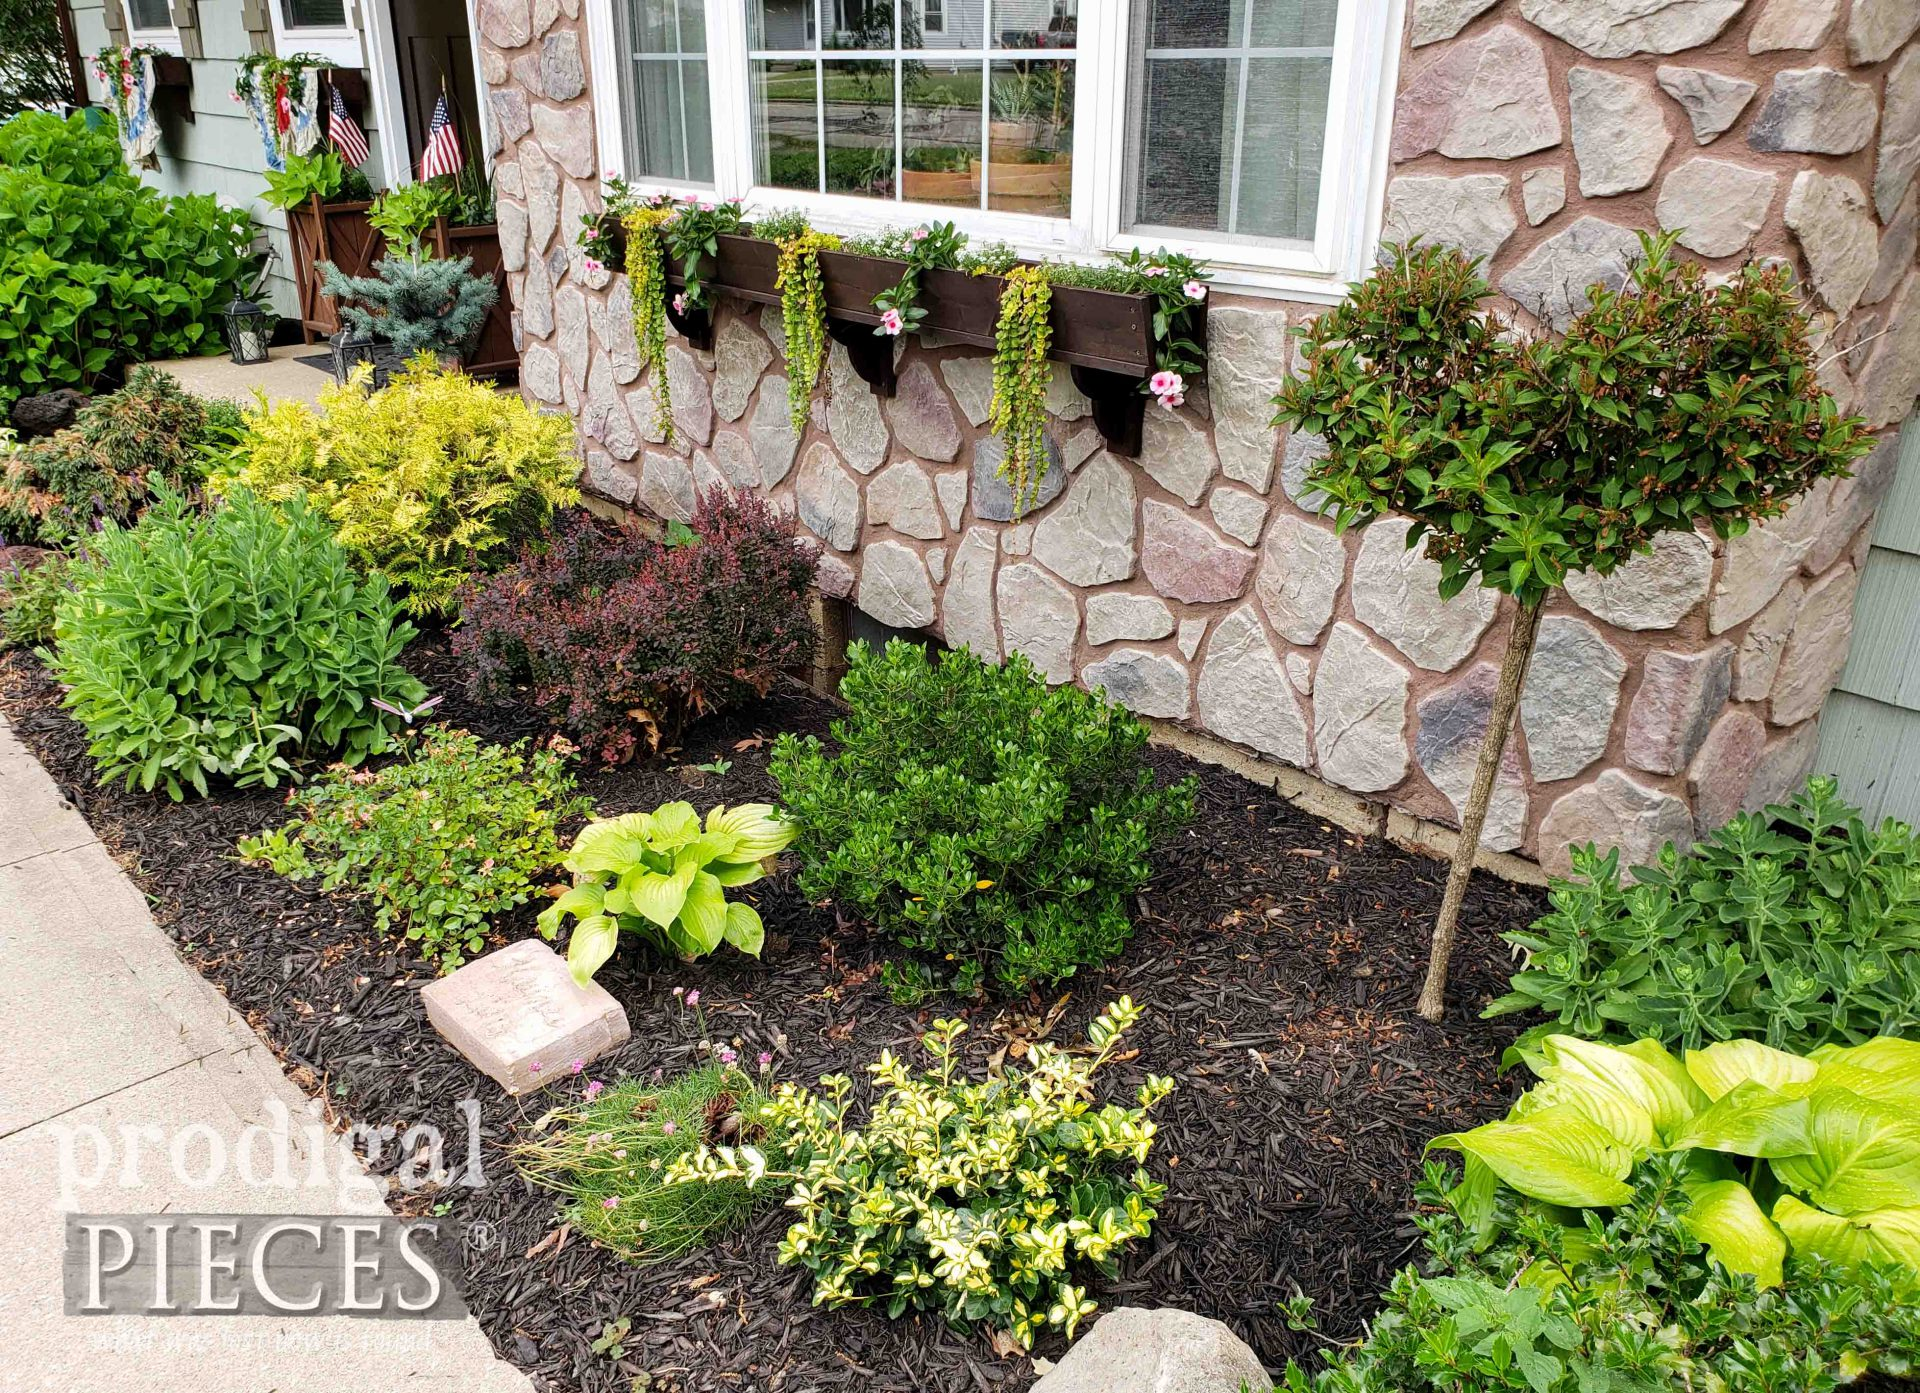 DIY House Front Landscaping by Larissa of Prodigal Pieces | prodigalpieces.com #prodigalpieces #diy #landscaping #gardening